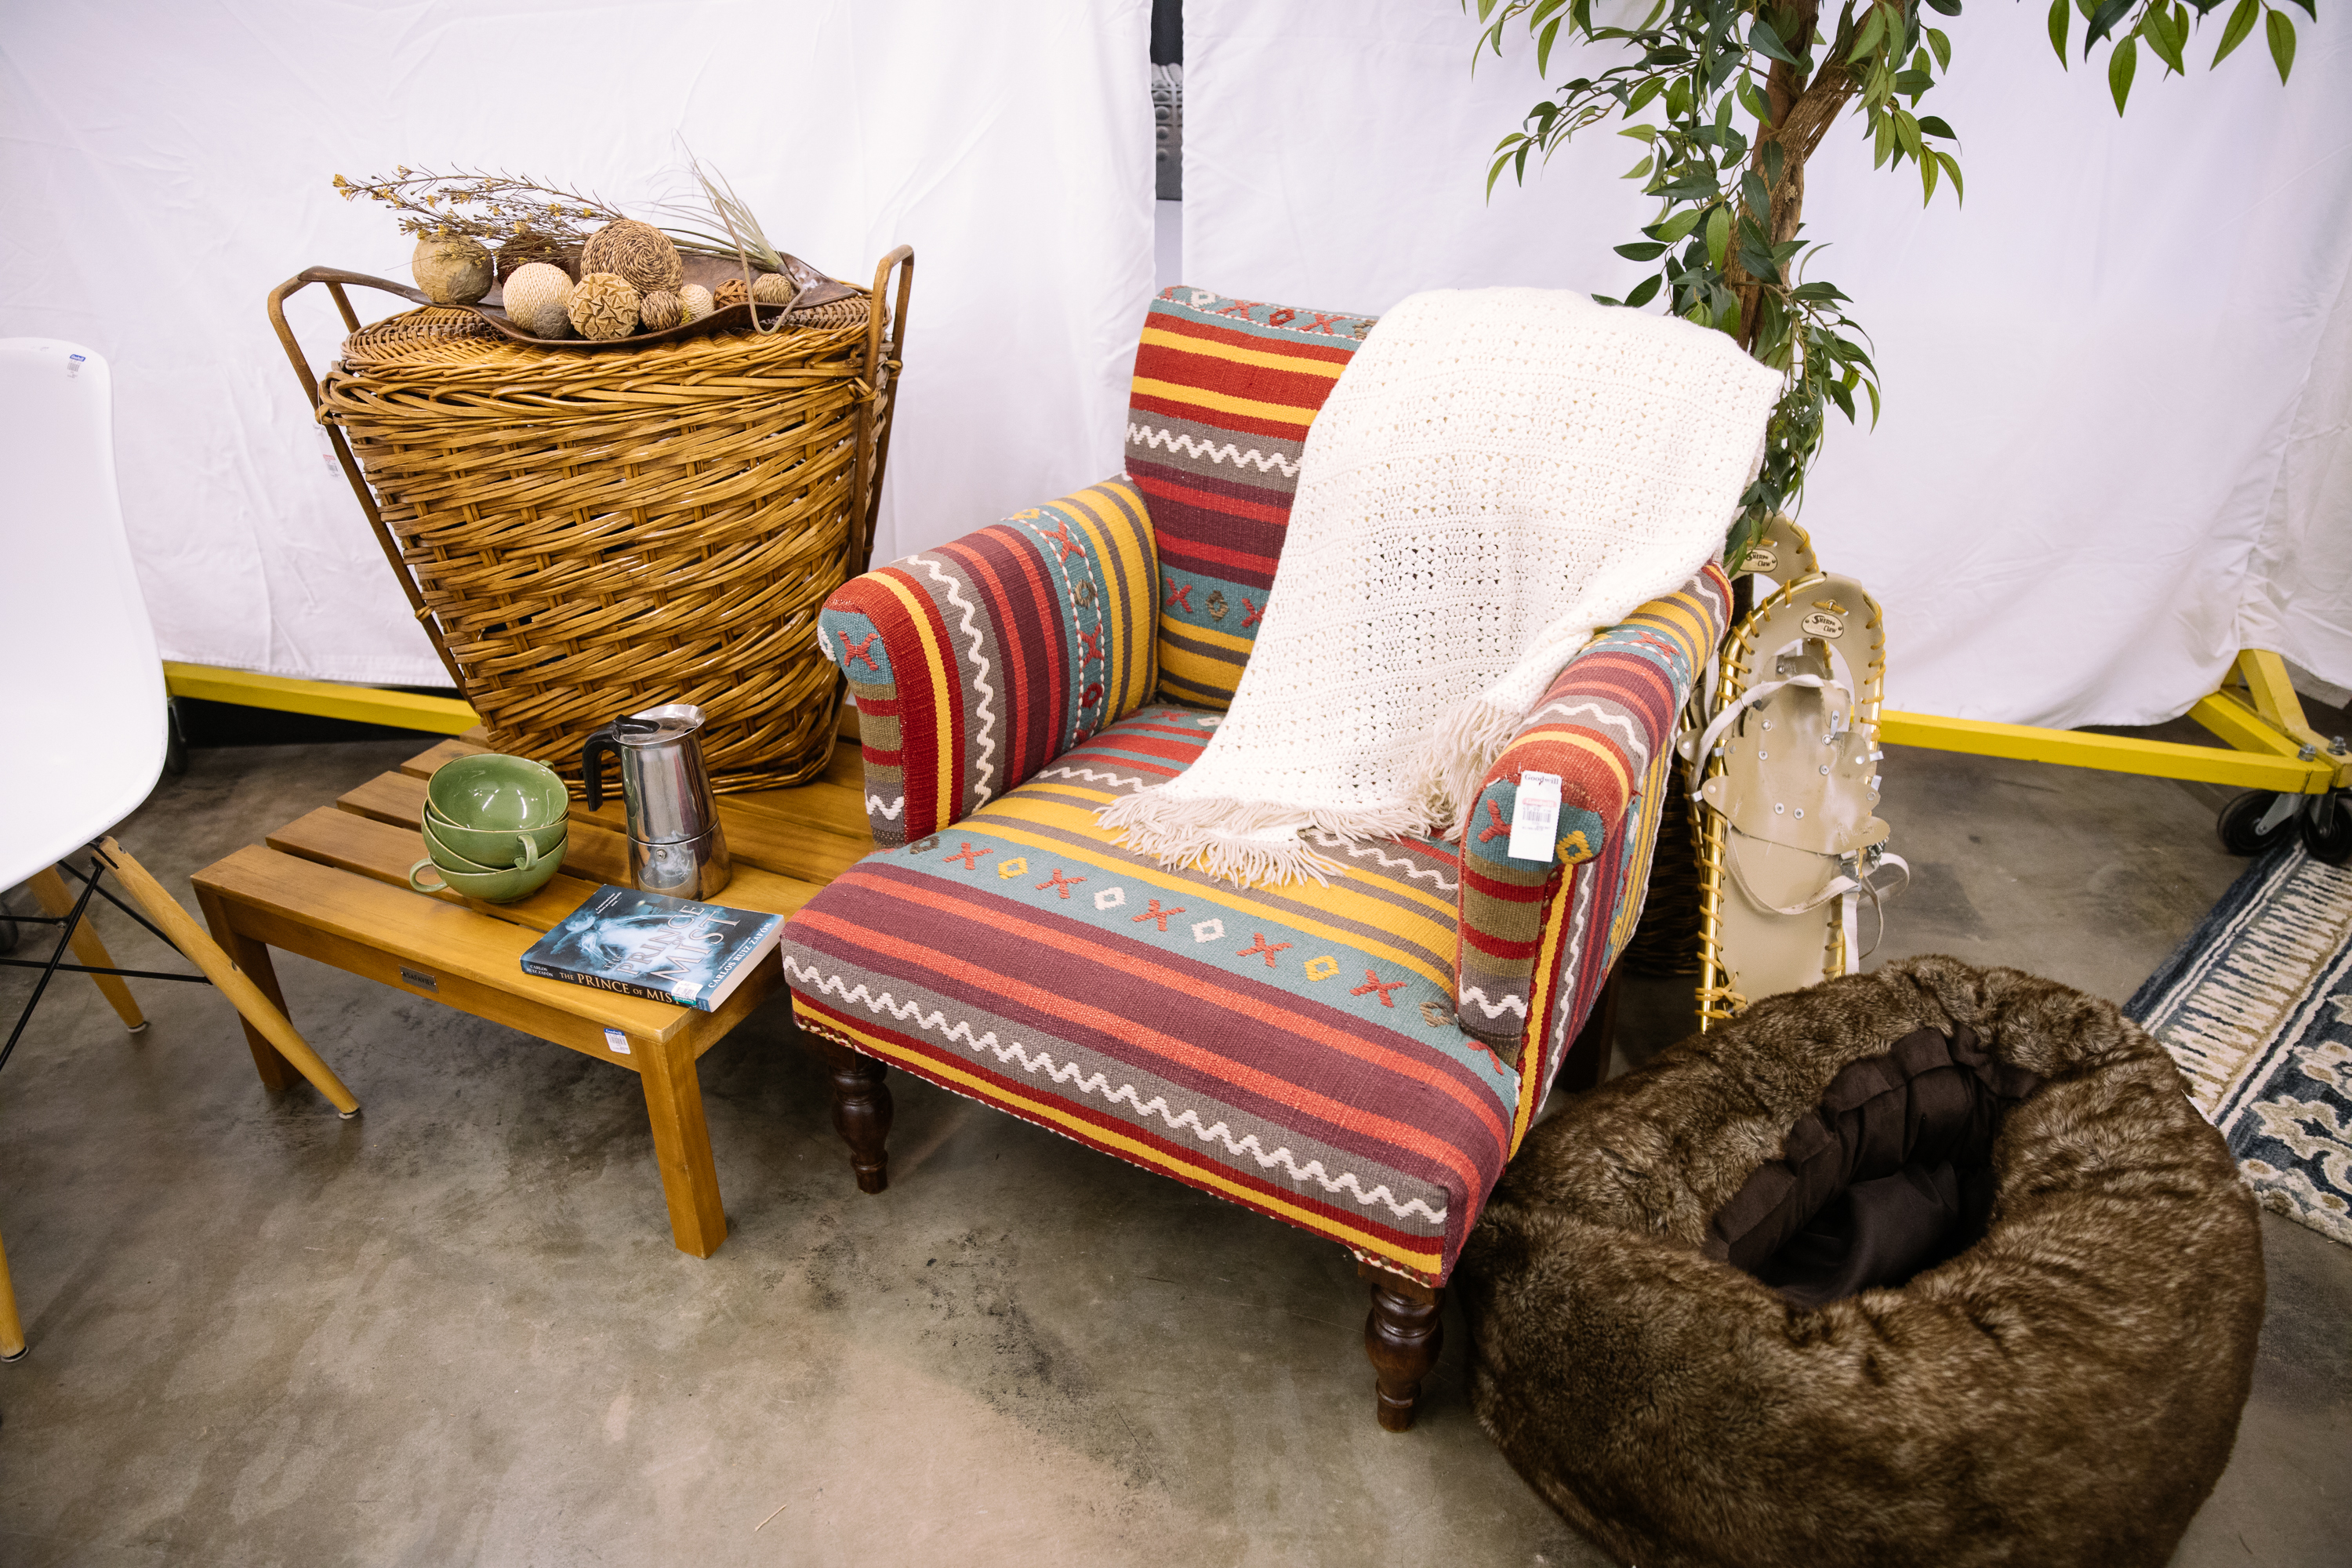 Hygge is a Danish lifestyle that emphasizes being comfy and cozy. Items from Seattle Goodwill including books, blankets, pillows, furniture, mugs and candles can help you create a warm, inviting home on a budget. DIY Guy and Decor Expert Gary Foy showed Refined how to relax and embrace the art of Hygge, including simple projects you can create to make your time at home special. (Photo: Seattle Goodwill)